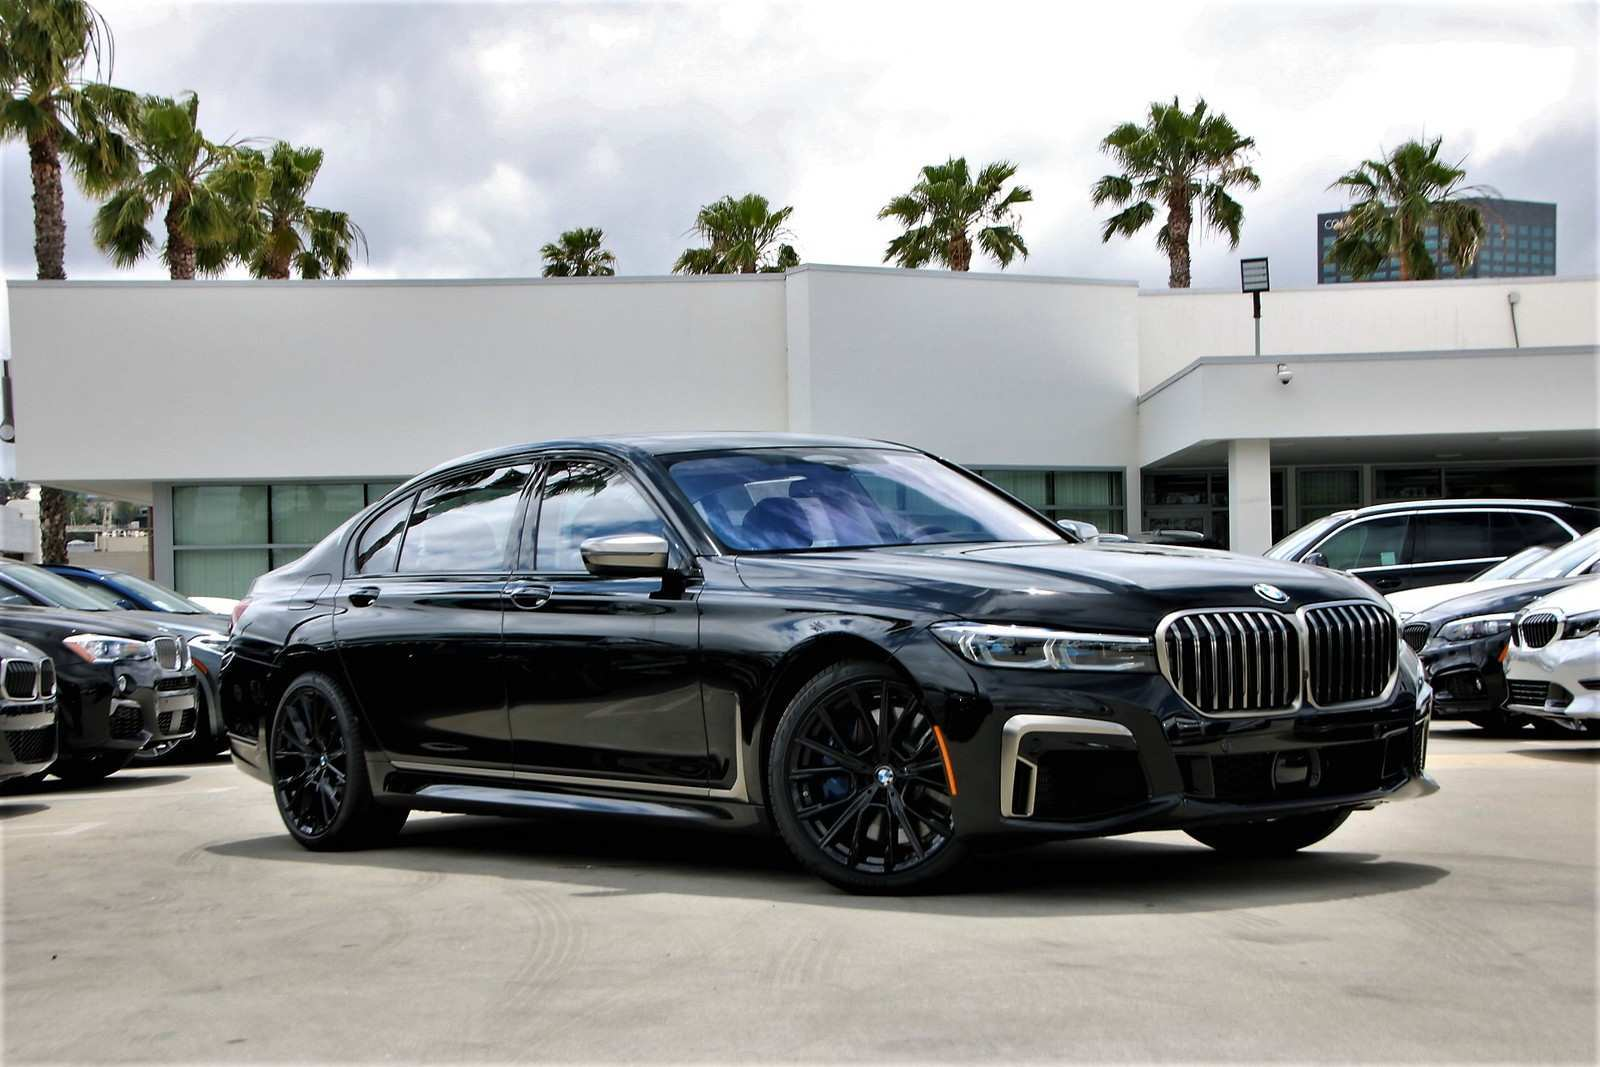 60 The Best Bmw Series 7 2020 Overview